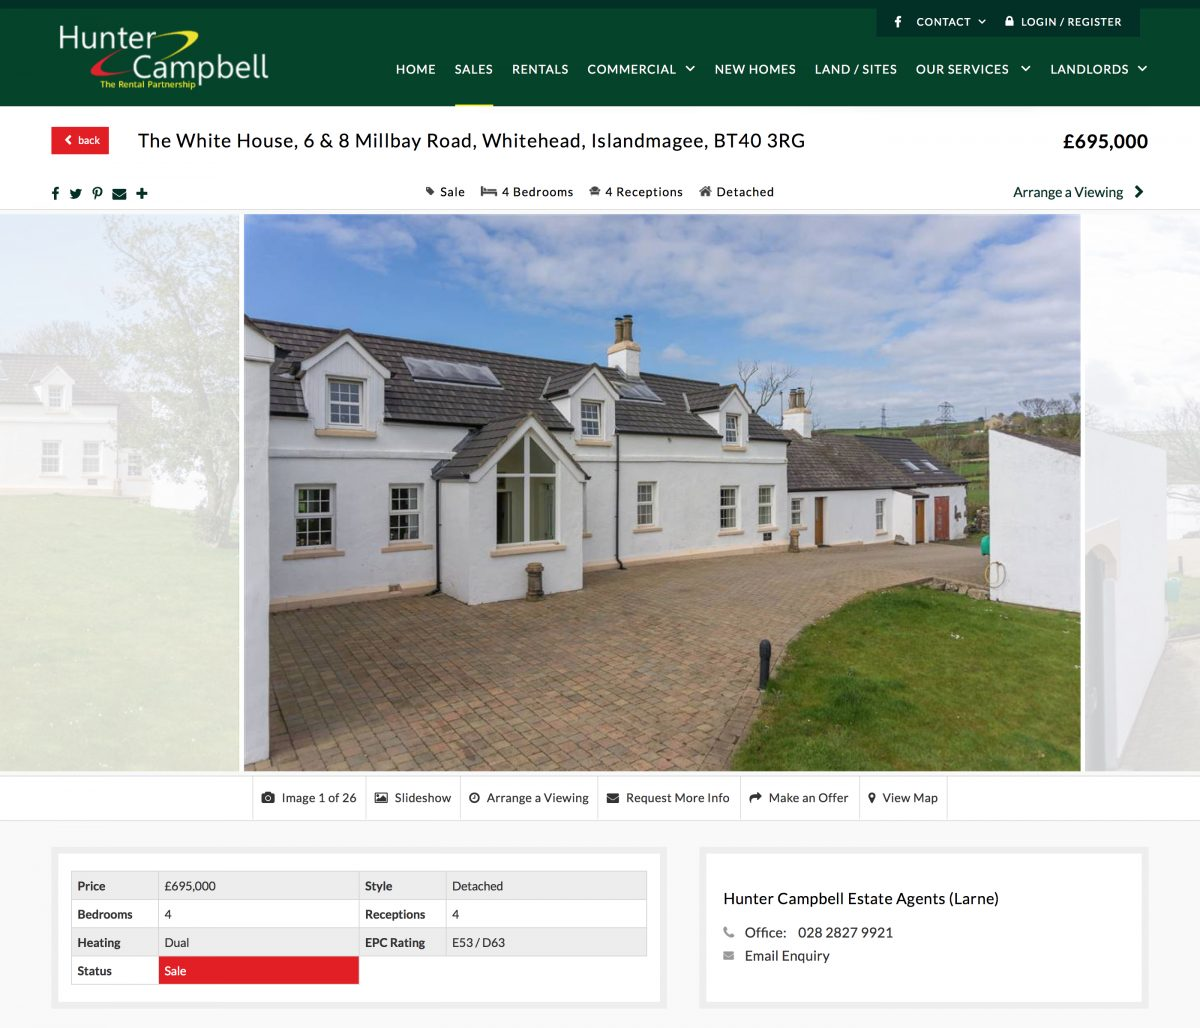 The White House, 6 & 8 Millbay Road, Whitehead, Islandmagee Property for sale at Hunter Campbell agents Northern Ireland